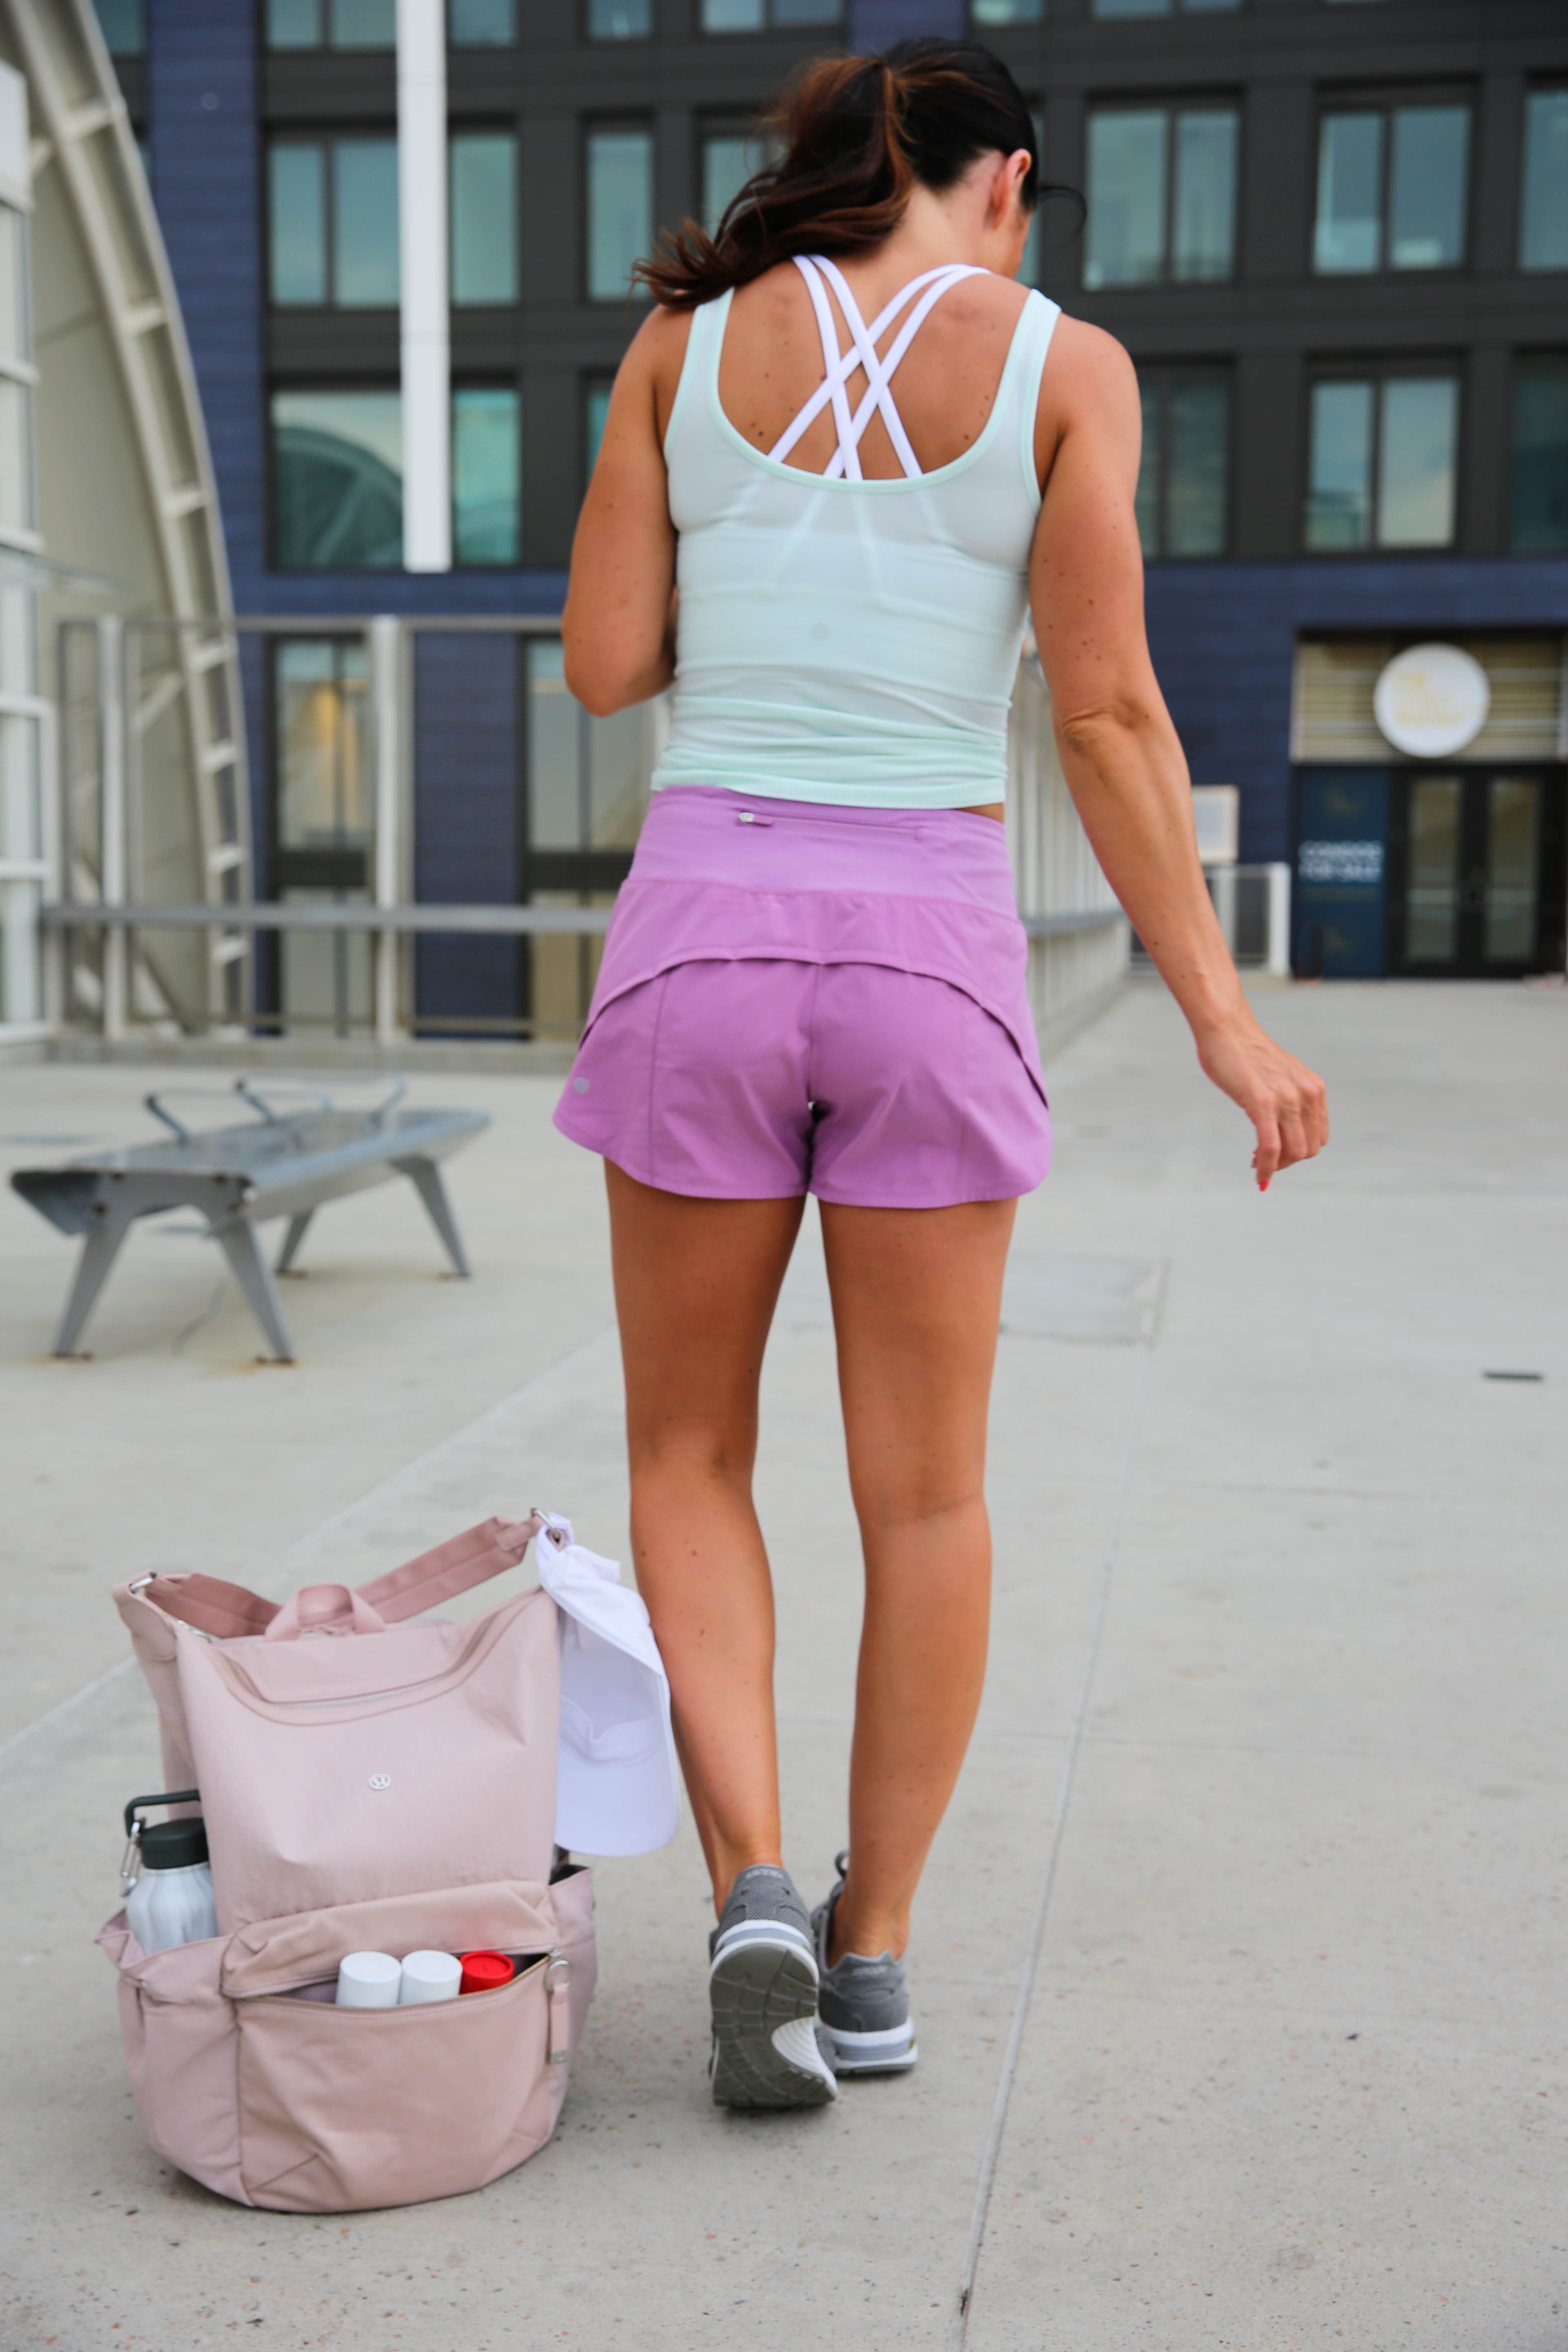 PaleOMG - Full Coverage Sports Bras & Shorts For Every Workout